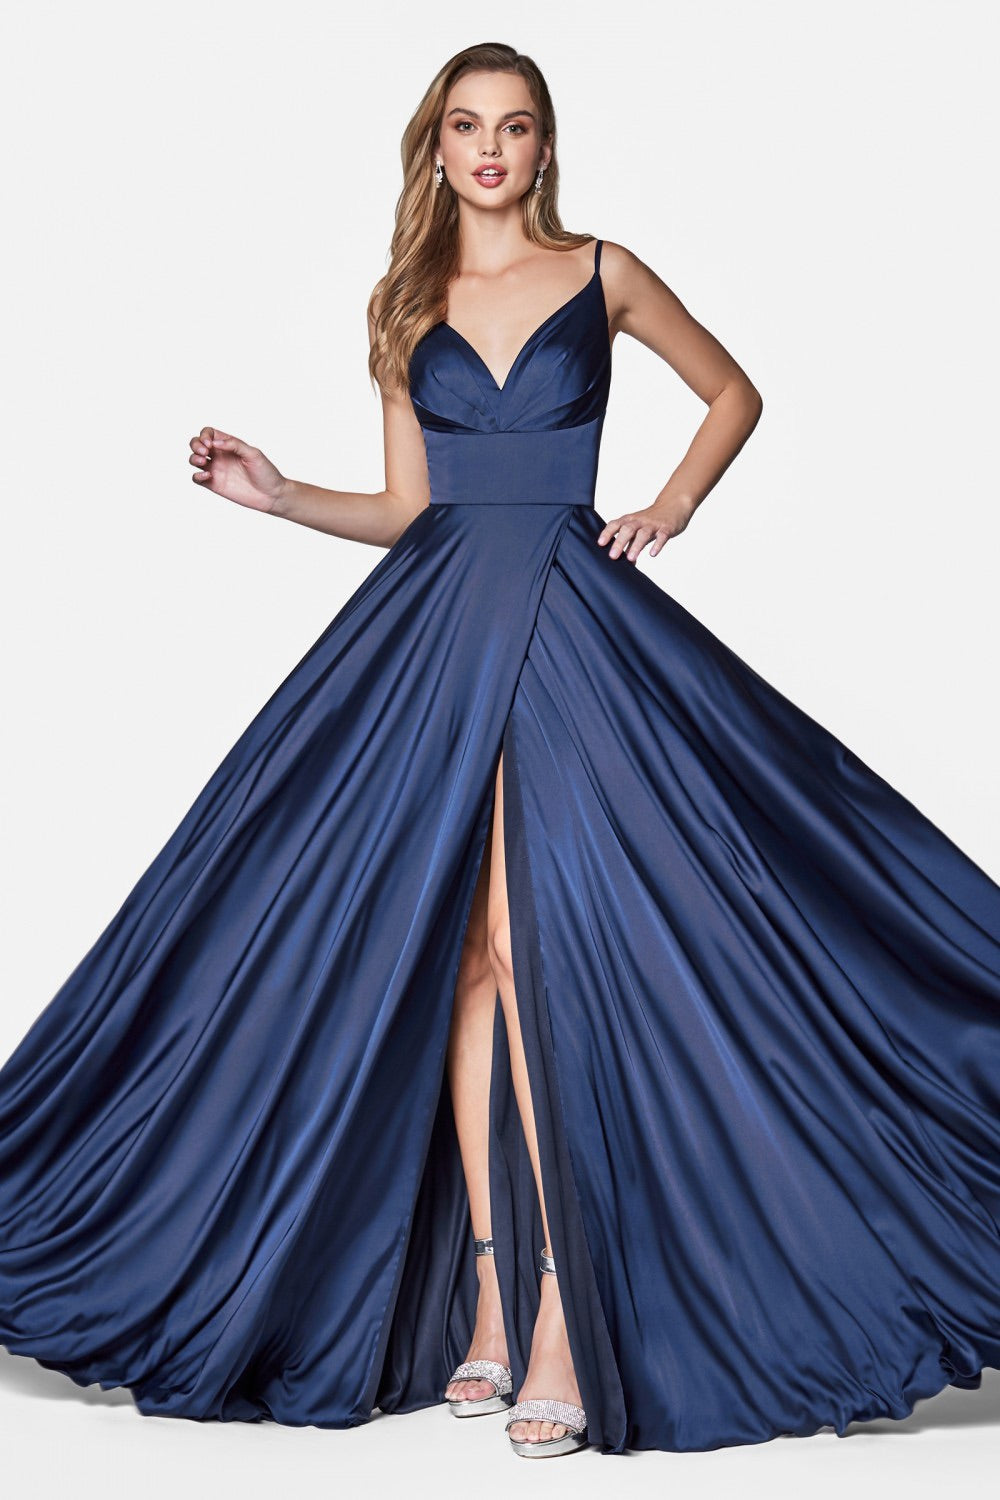 Cinderella Divine 7472 Satin A-Line Gown with High Slit - CYC Boutique